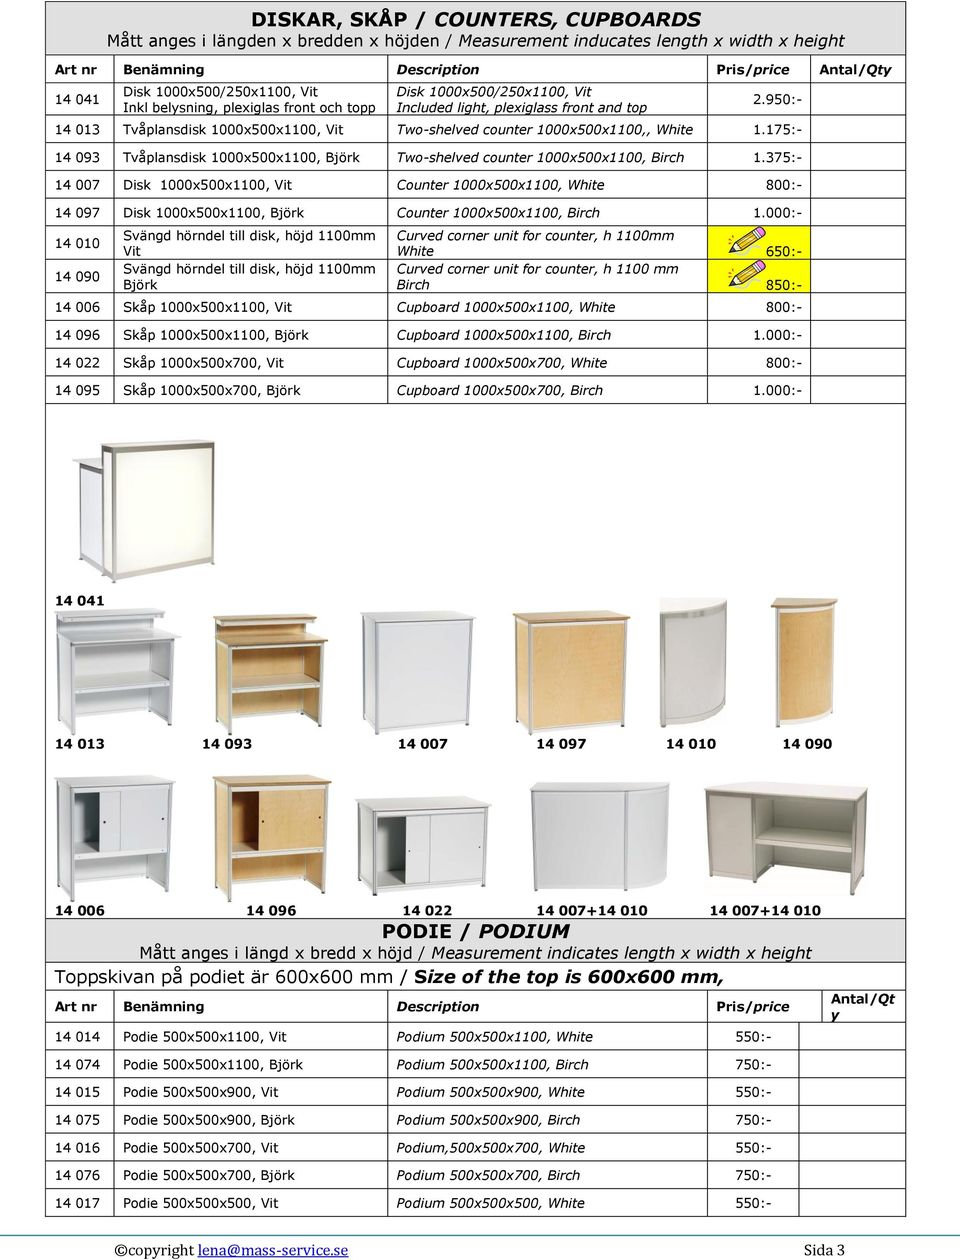 950:- 14 013 Tvåplansdisk 1000x500x1100, Vit Two-shelved counter 1000x500x1100,, White 1.175:- 14 093 Tvåplansdisk 1000x500x1100, Björk Two-shelved counter 1000x500x1100, Birch 1.